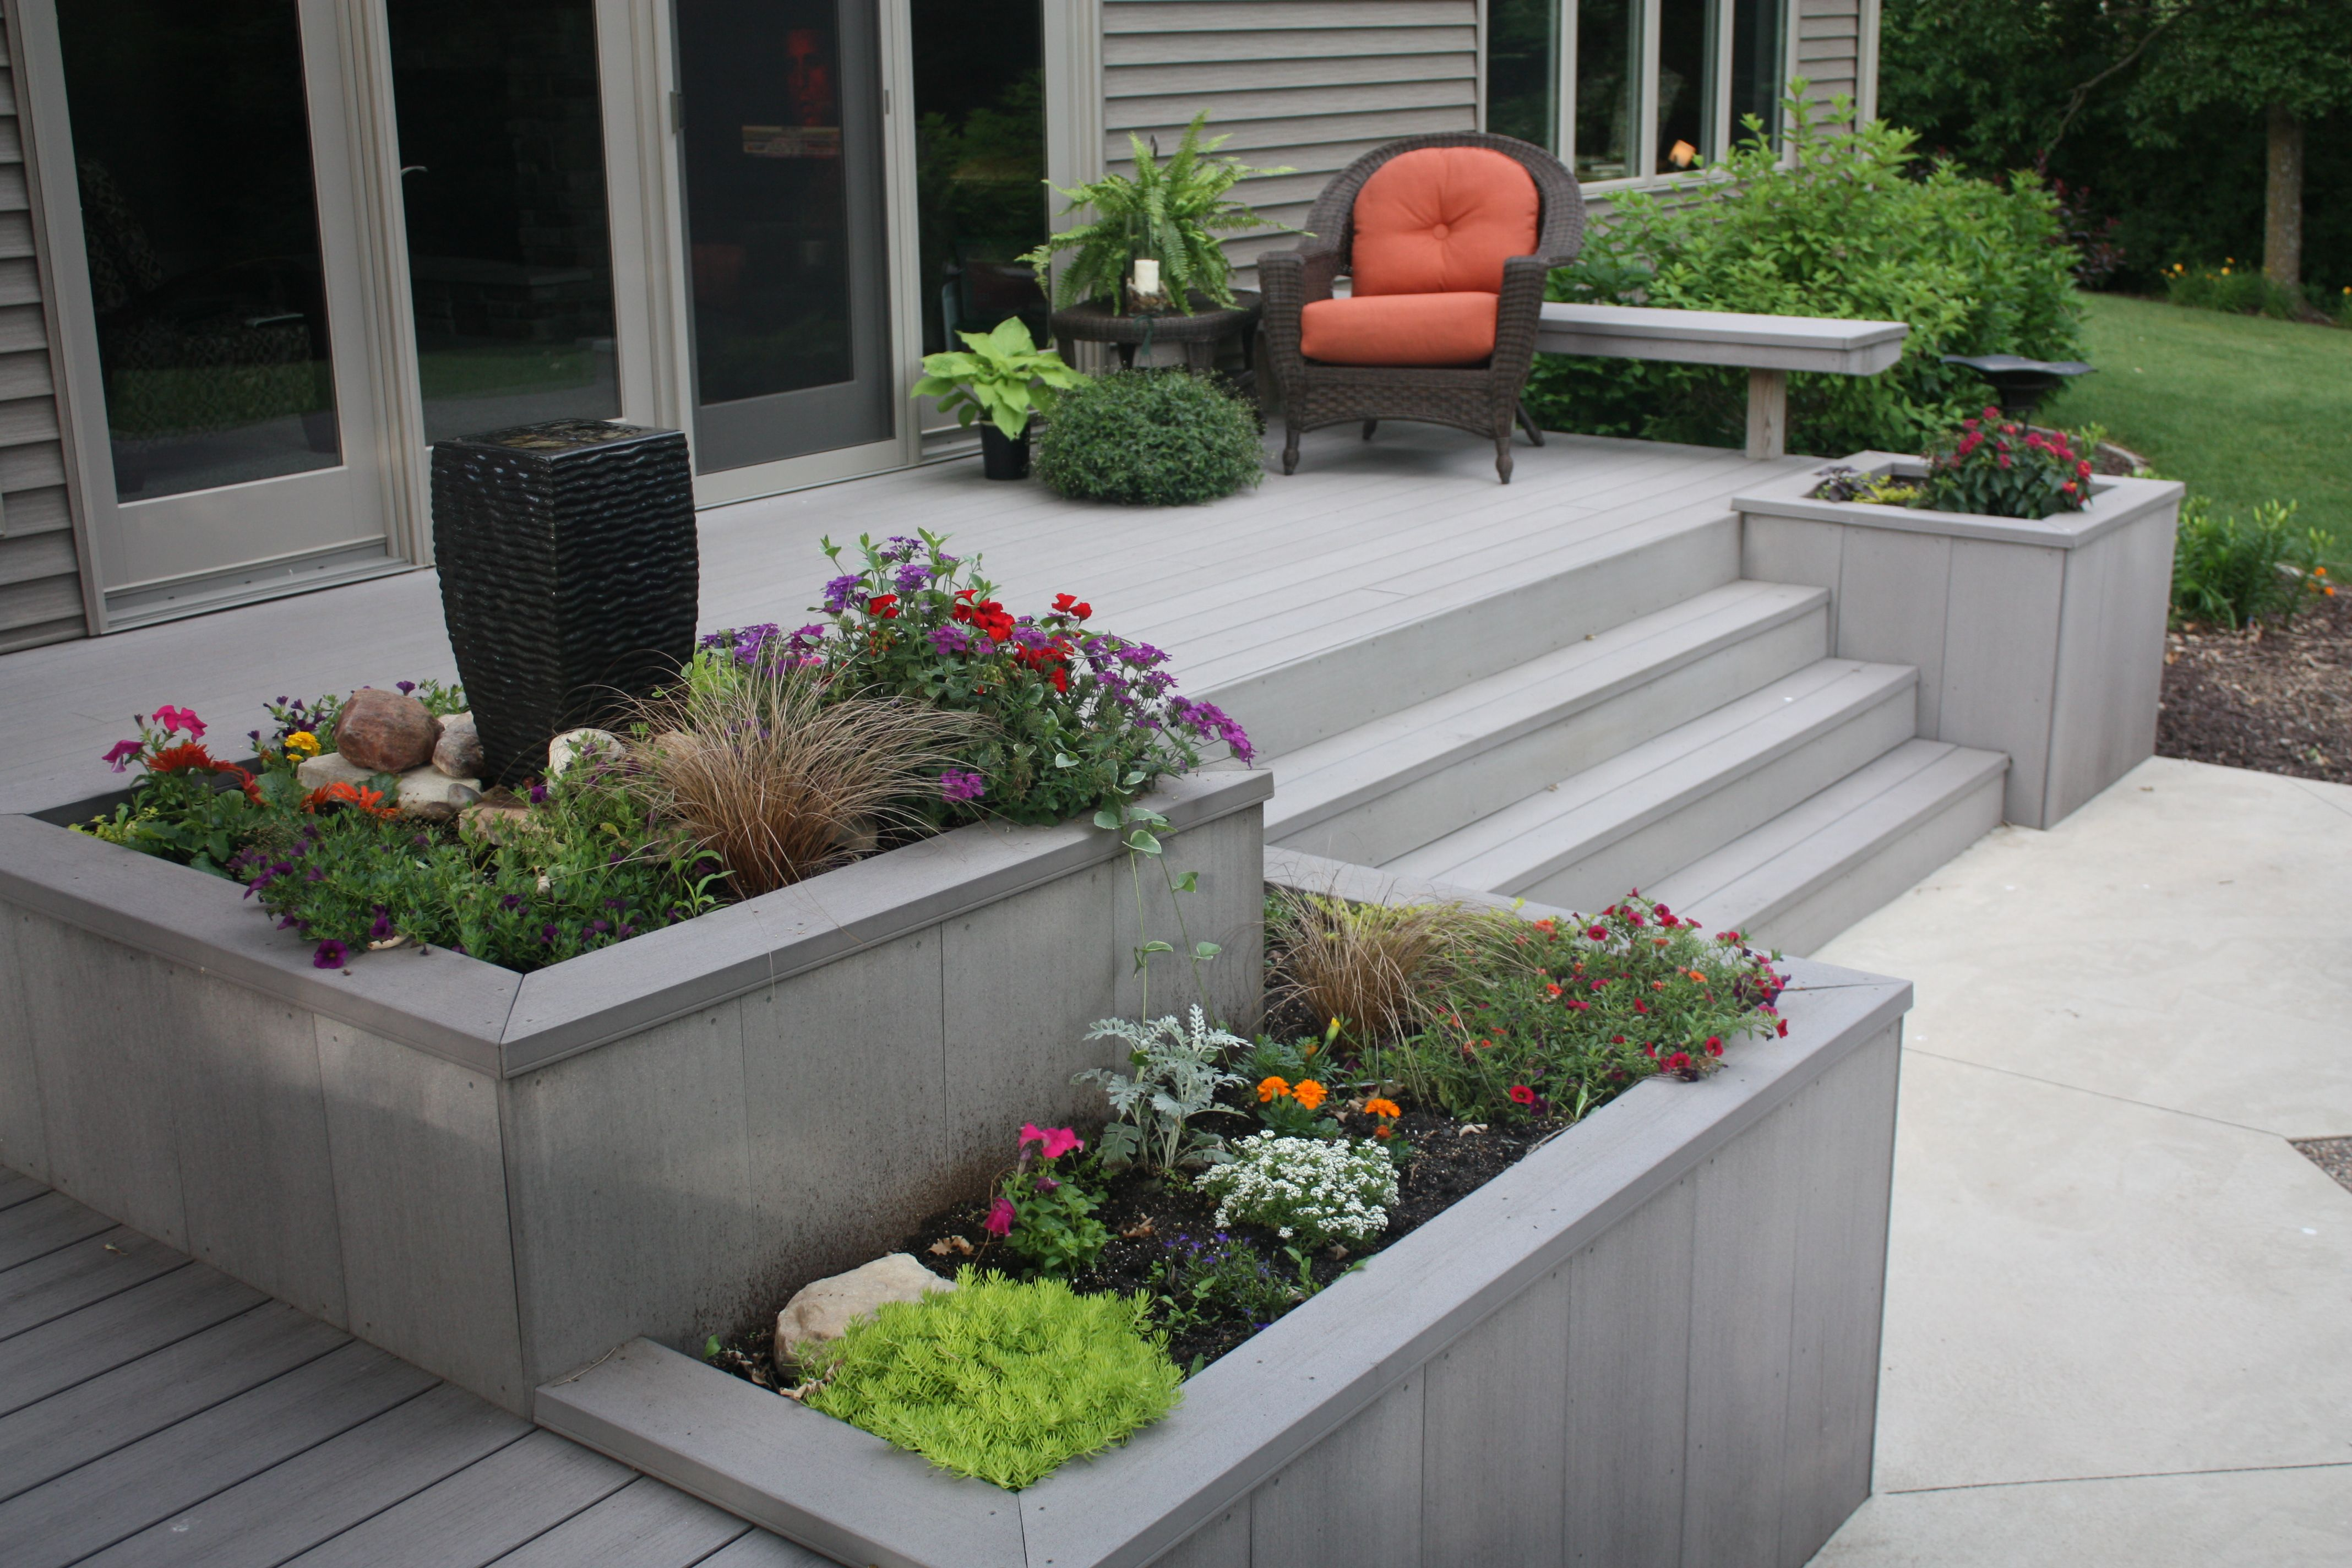 Built in planters with a water fountain.